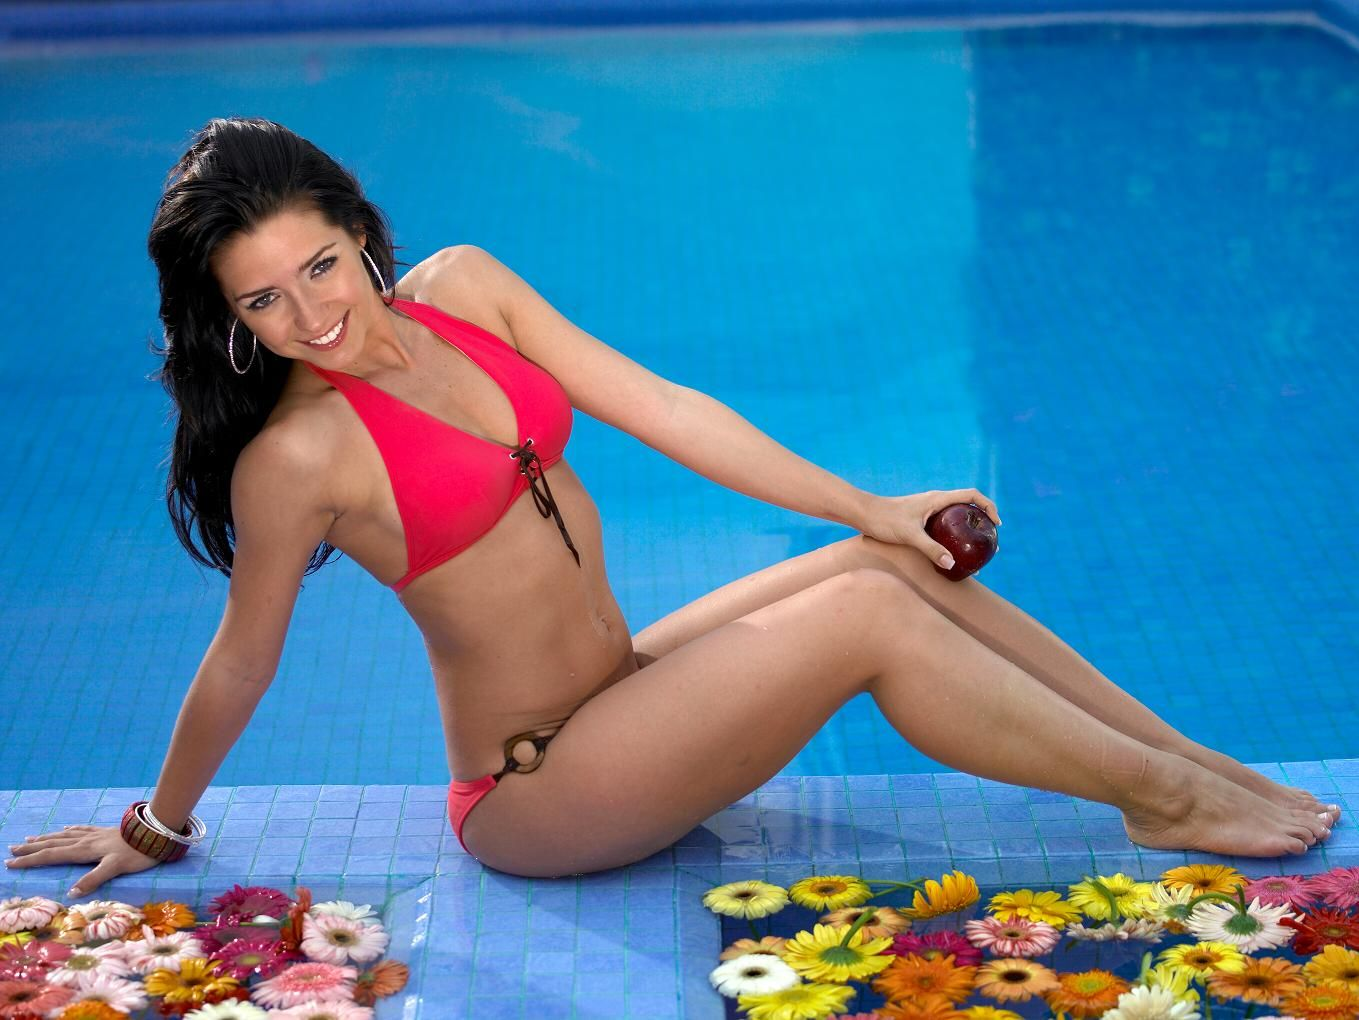 Angelica Celaya En Bikini pin on ariadne diaz